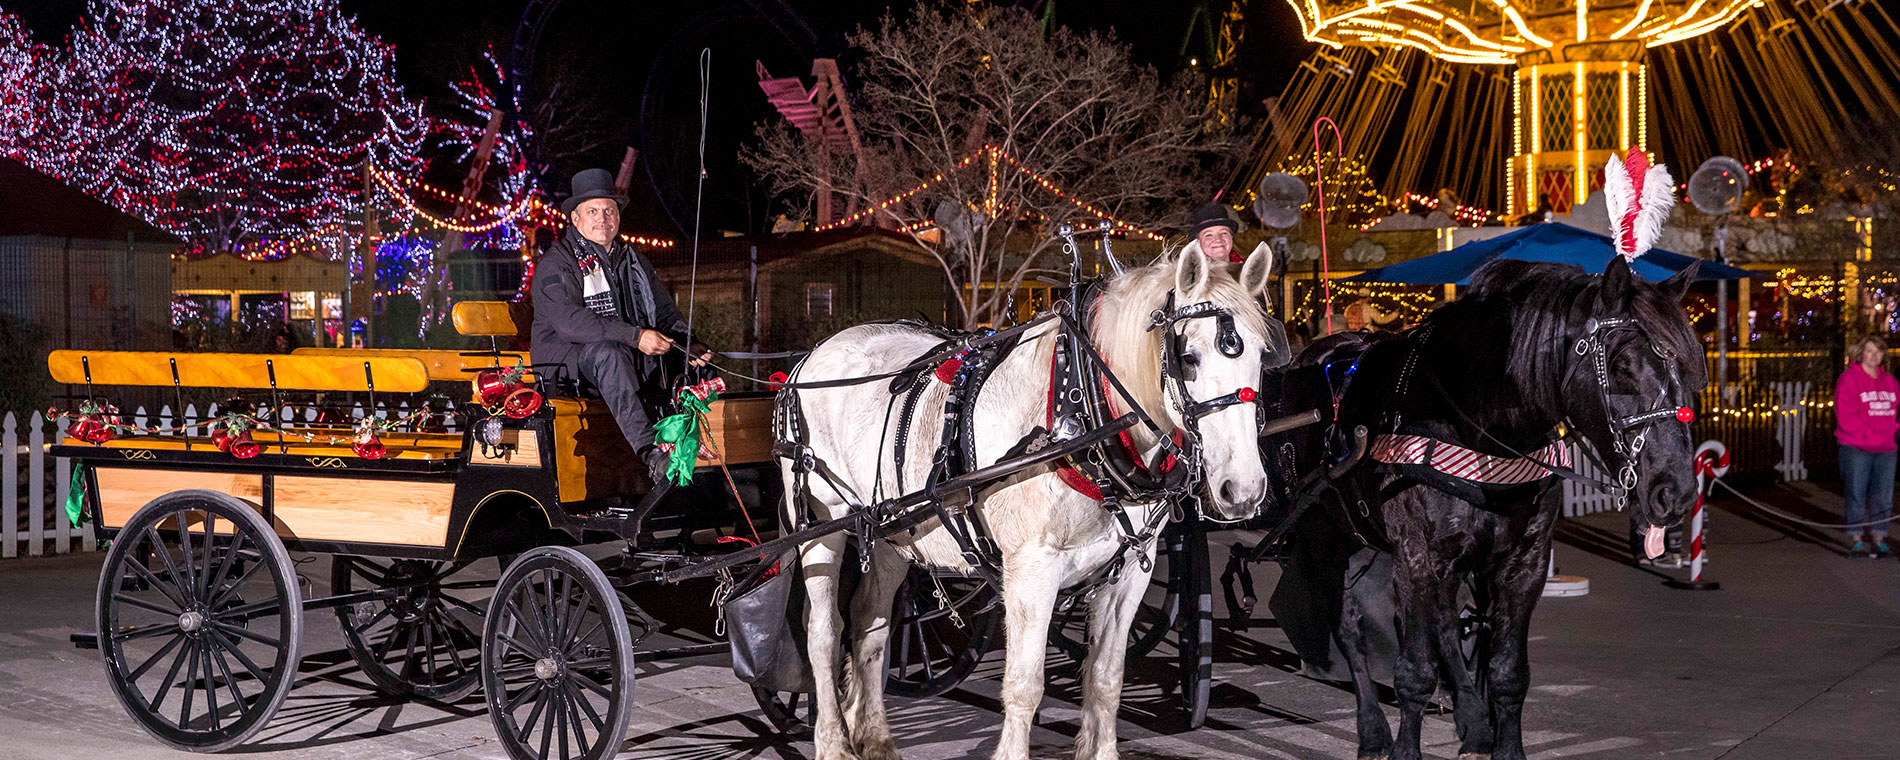 Old West Carriage Company at Worlds of Fun's Holiday Event